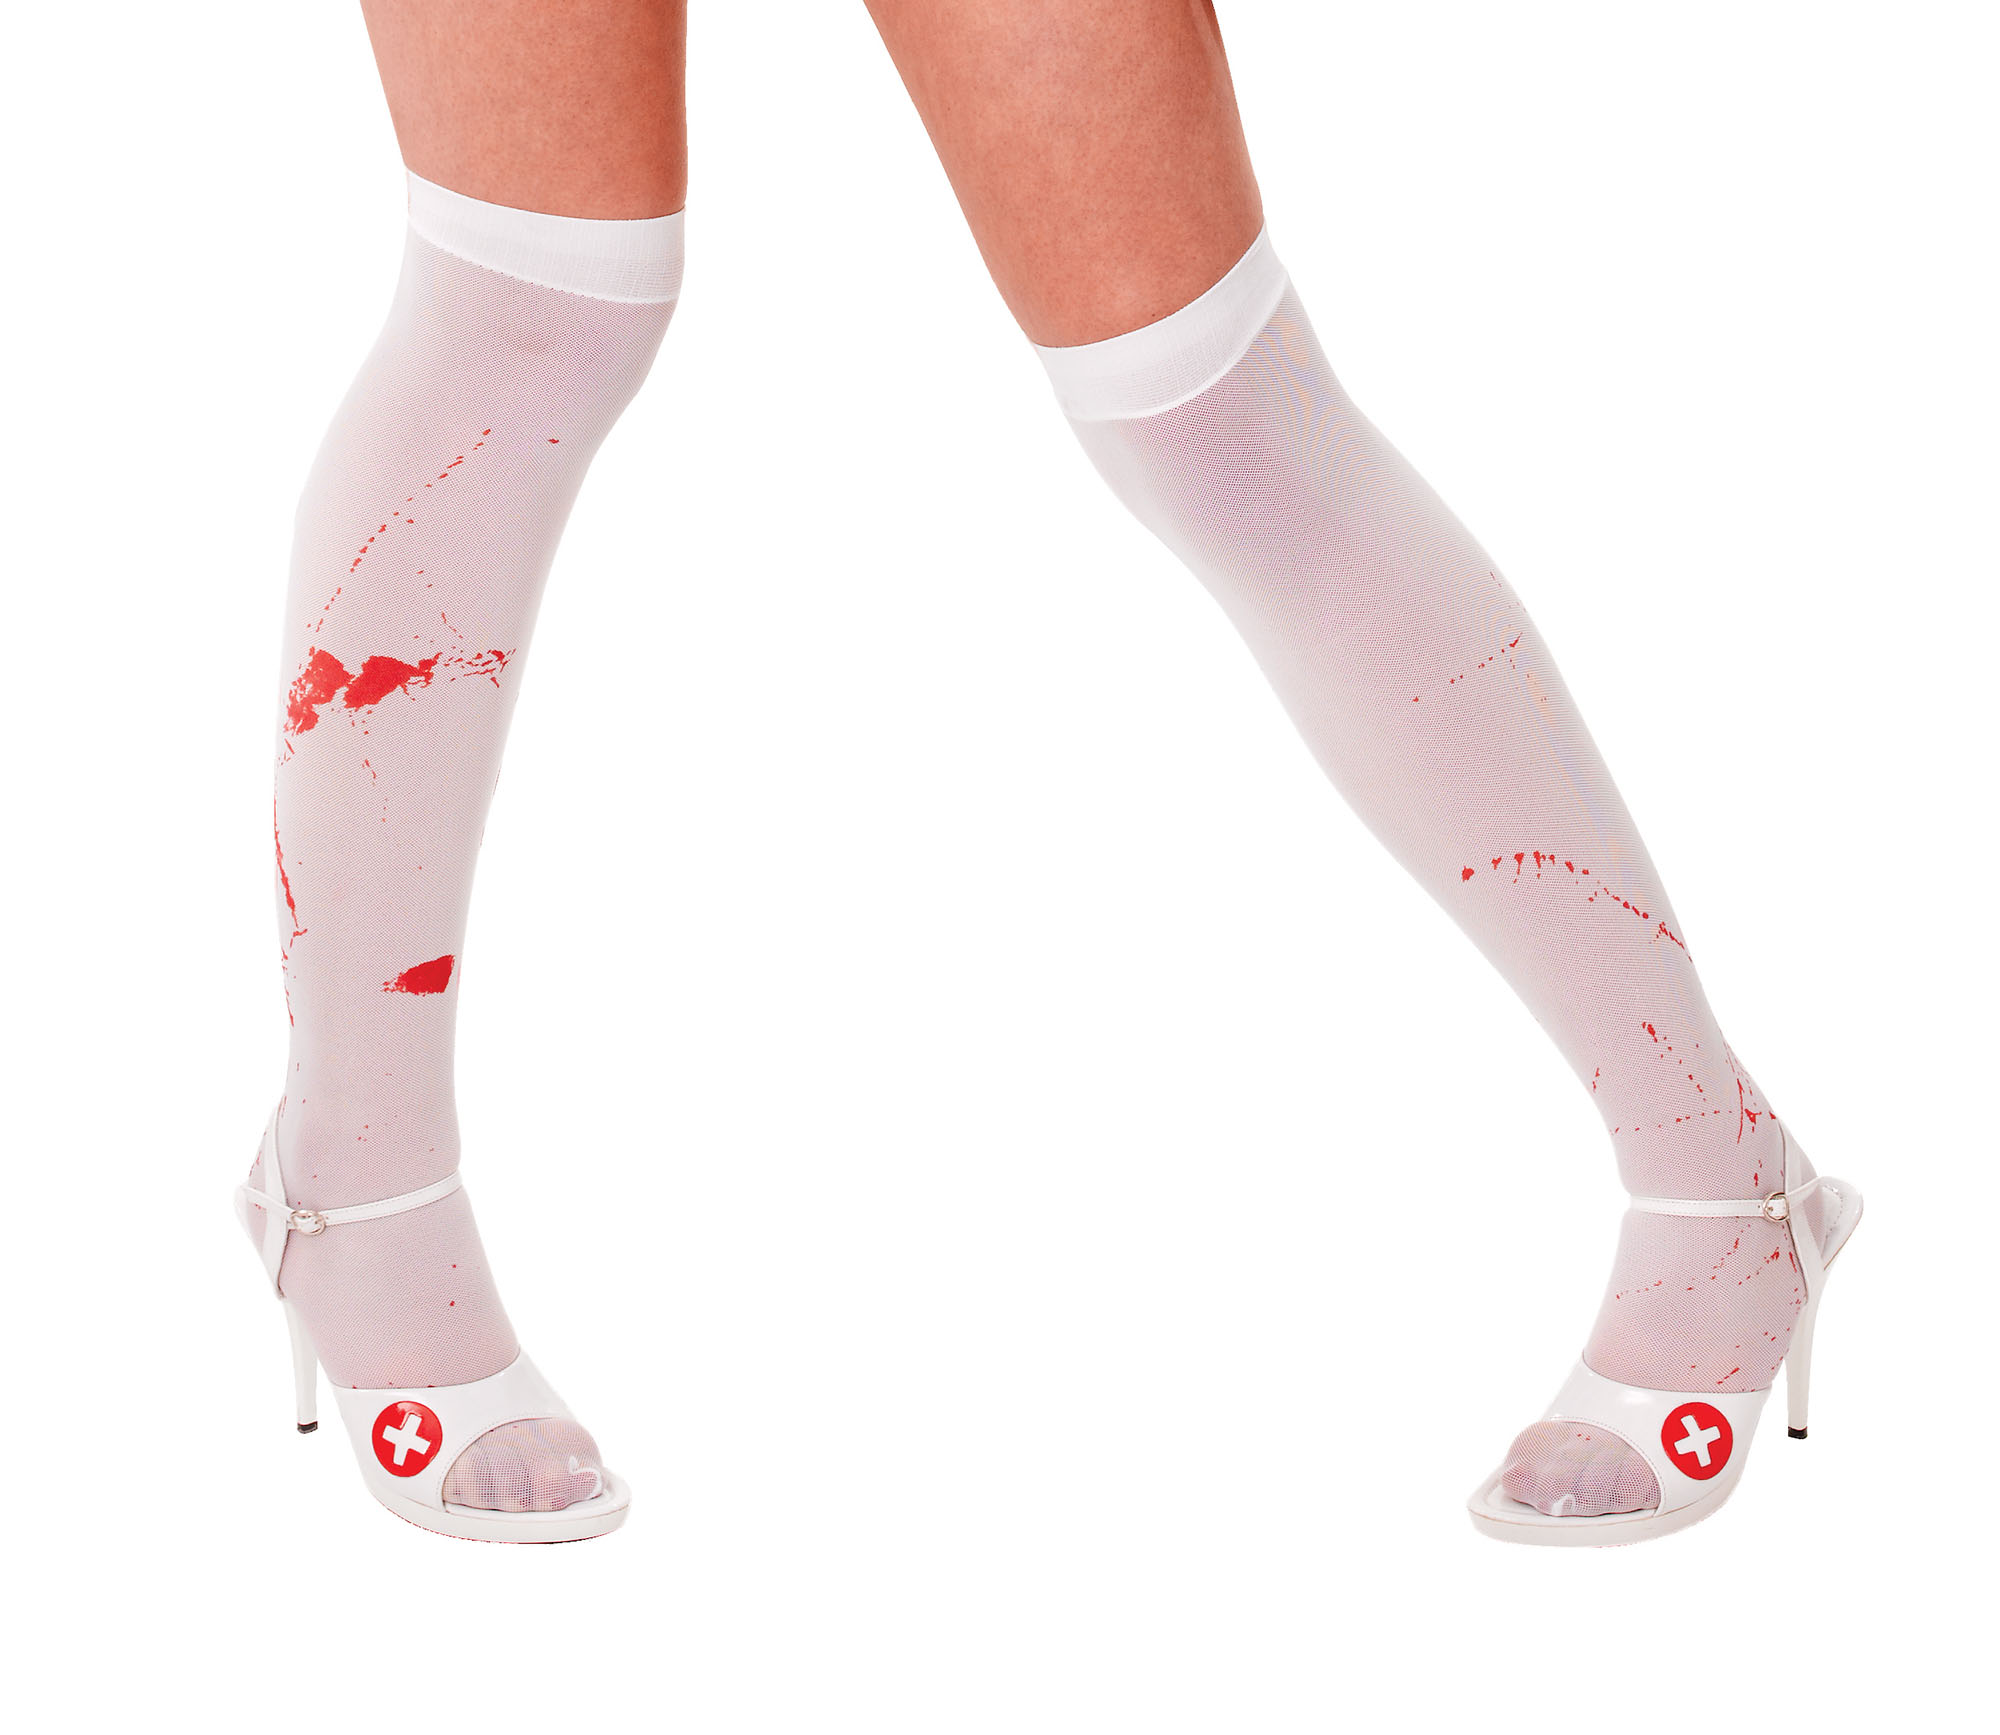 Adult White Stockings with Blood Stains